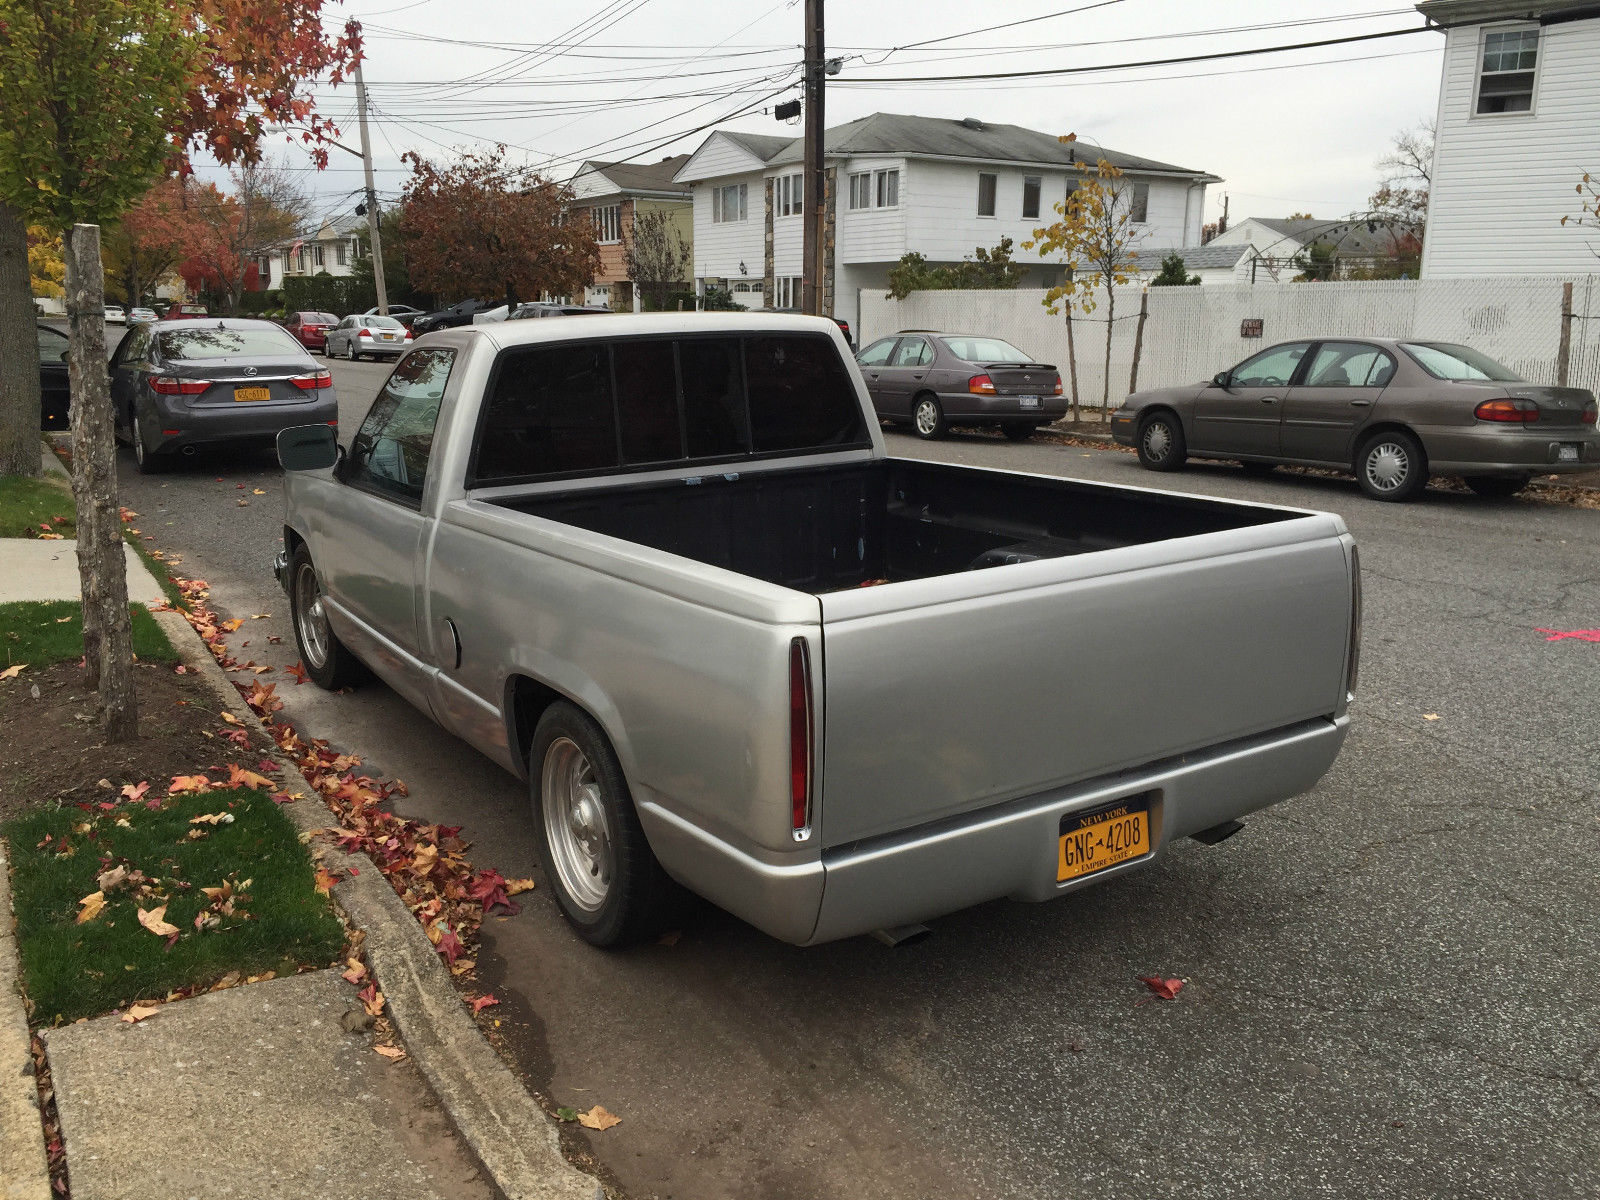 1990 chevy c1500 lowered sport truck 2x4 no reserve classic chevrolet c k pickup 1500 1990 for. Black Bedroom Furniture Sets. Home Design Ideas